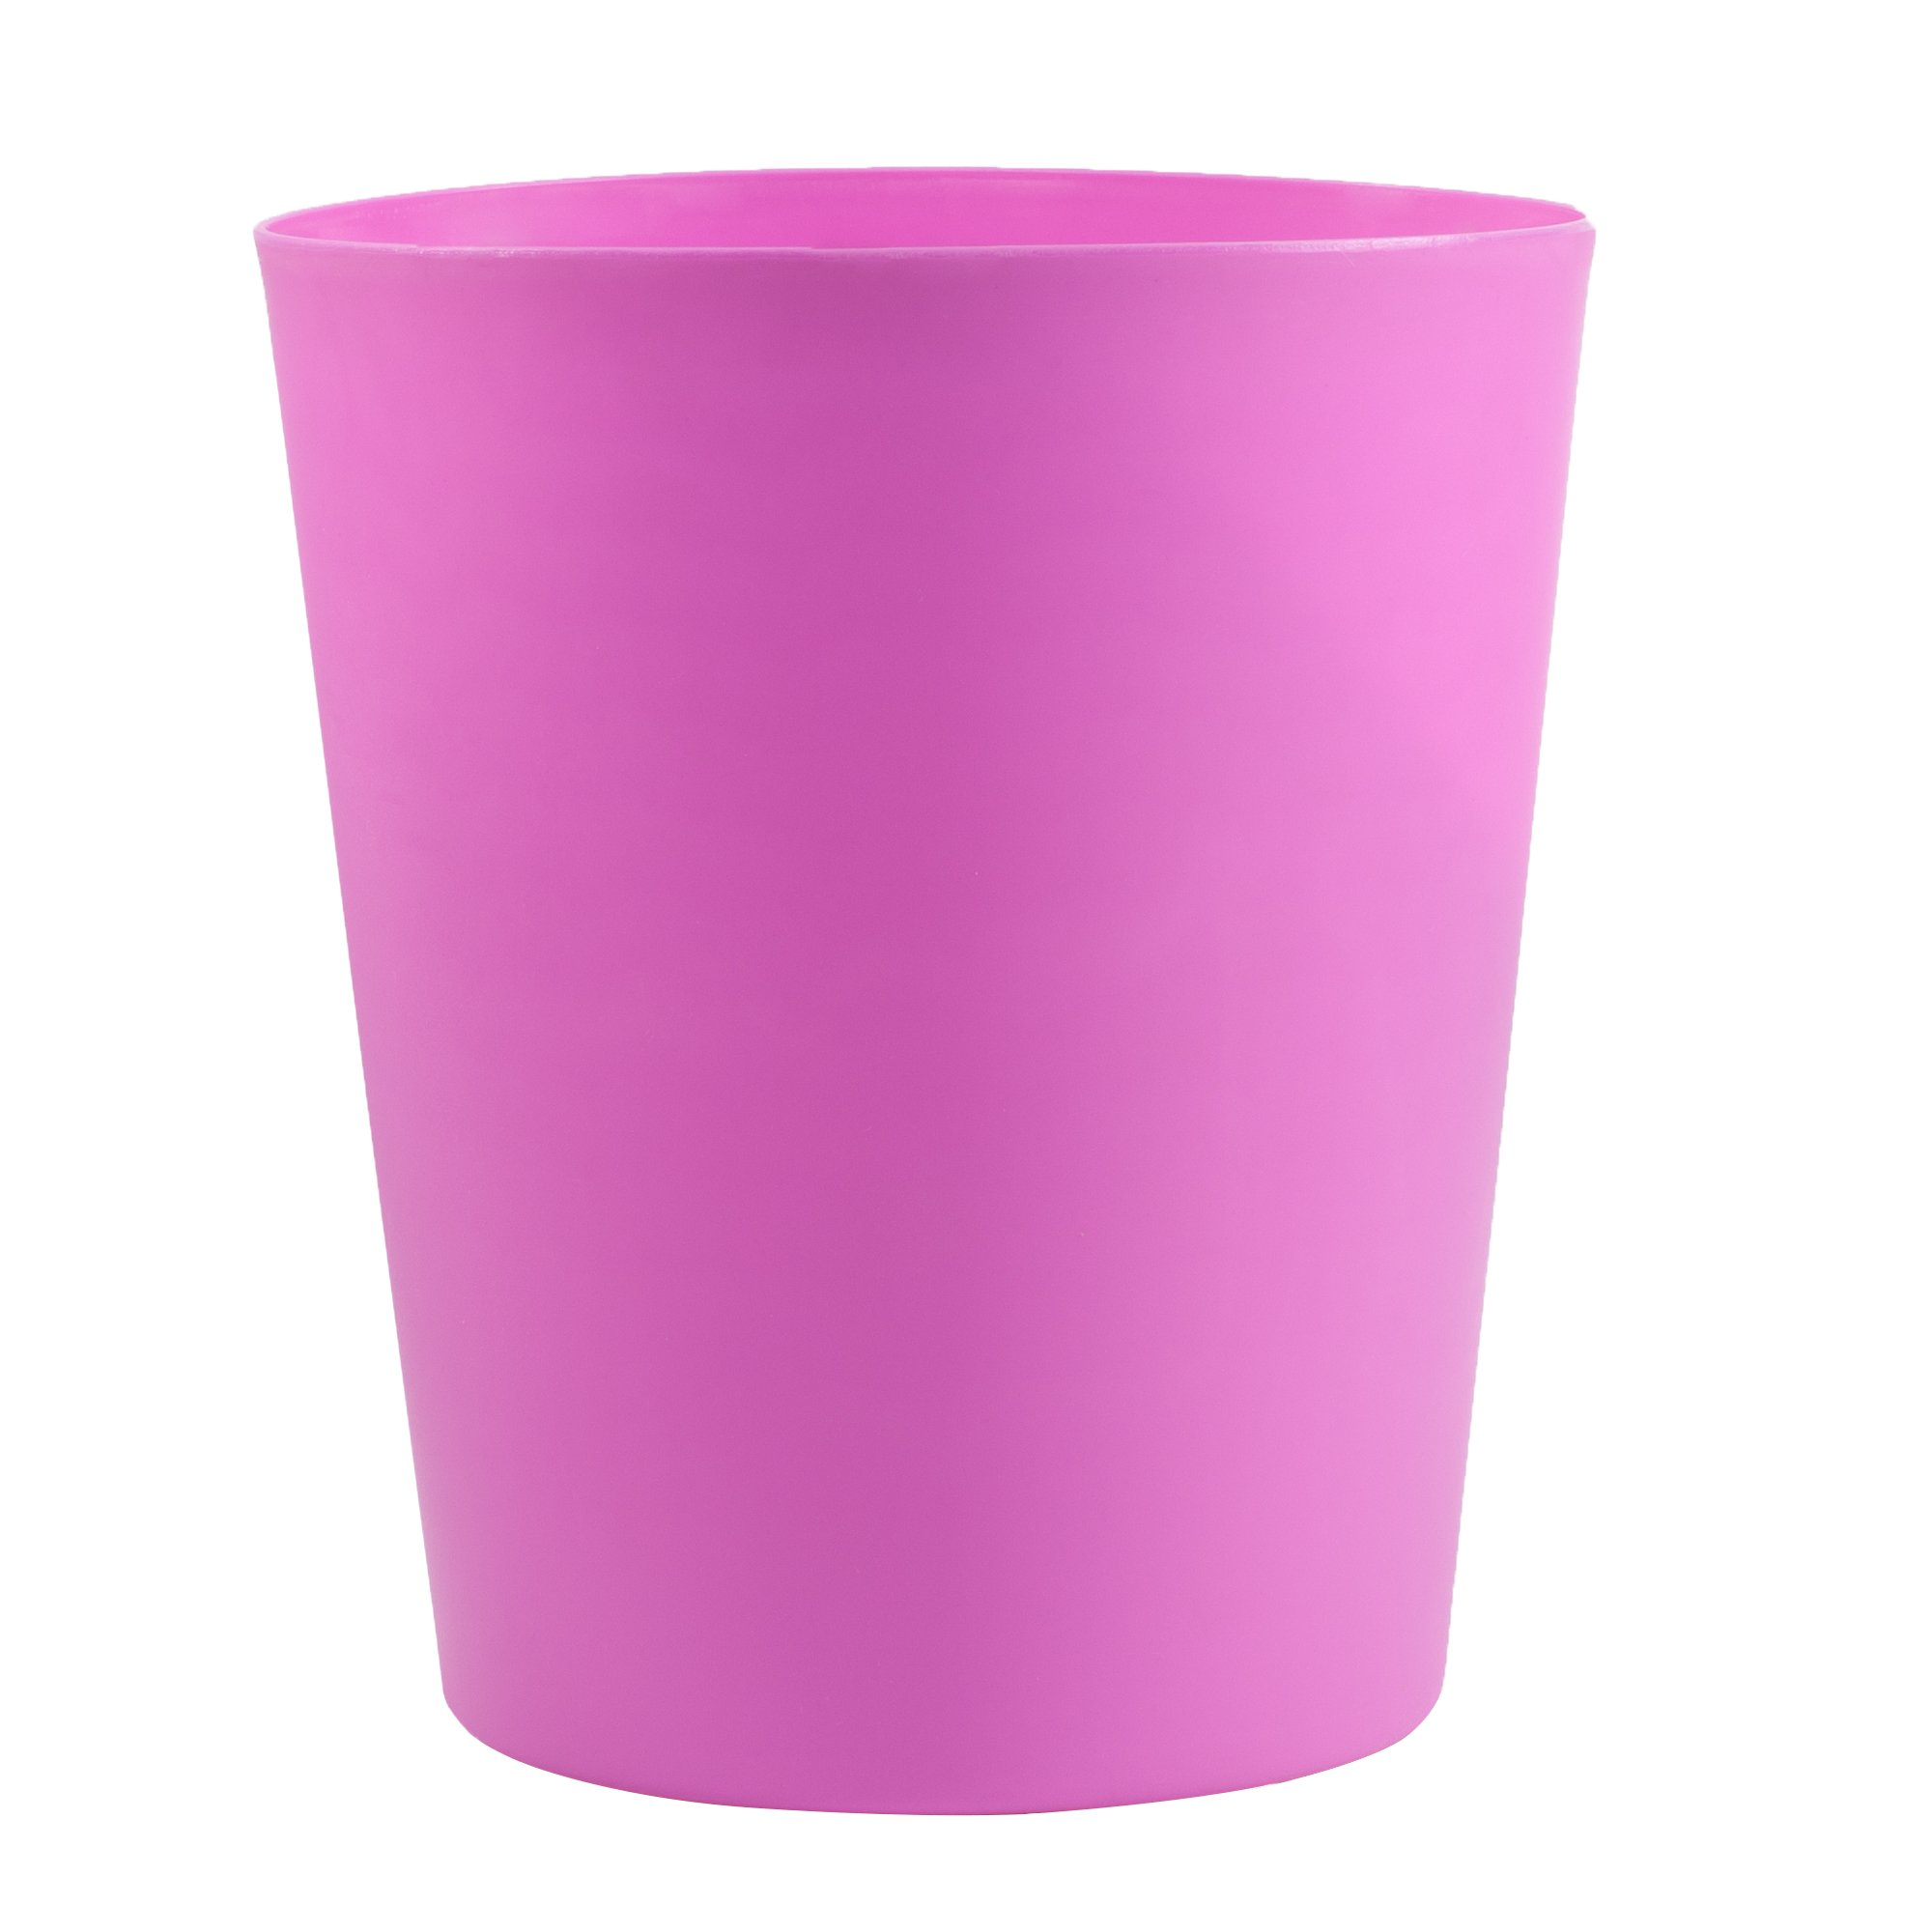 Everyday Home Trash Can - Pink by Everyday Home